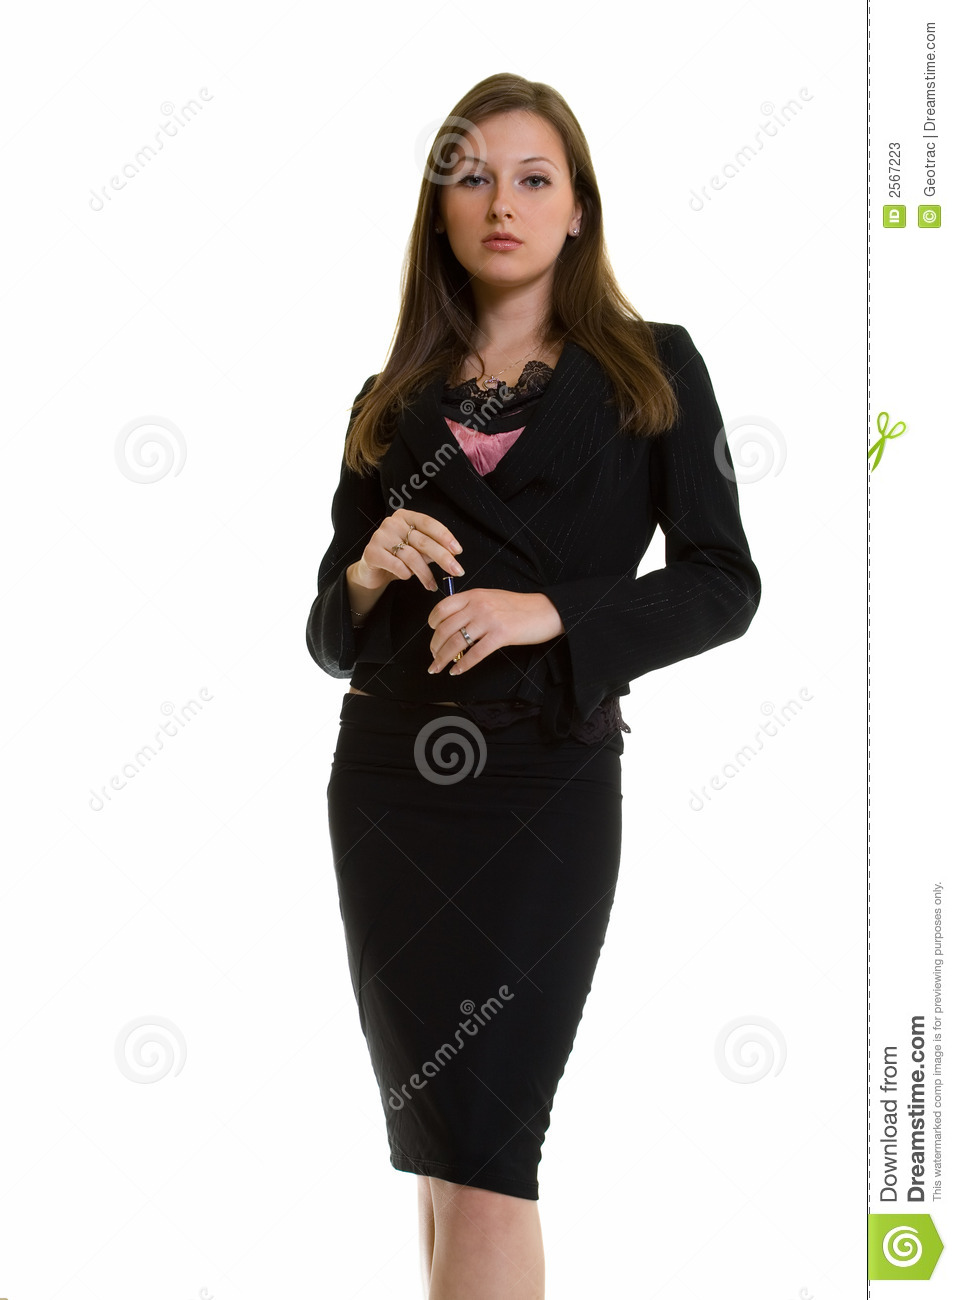 stern-young-business-woman-2567223.jpg